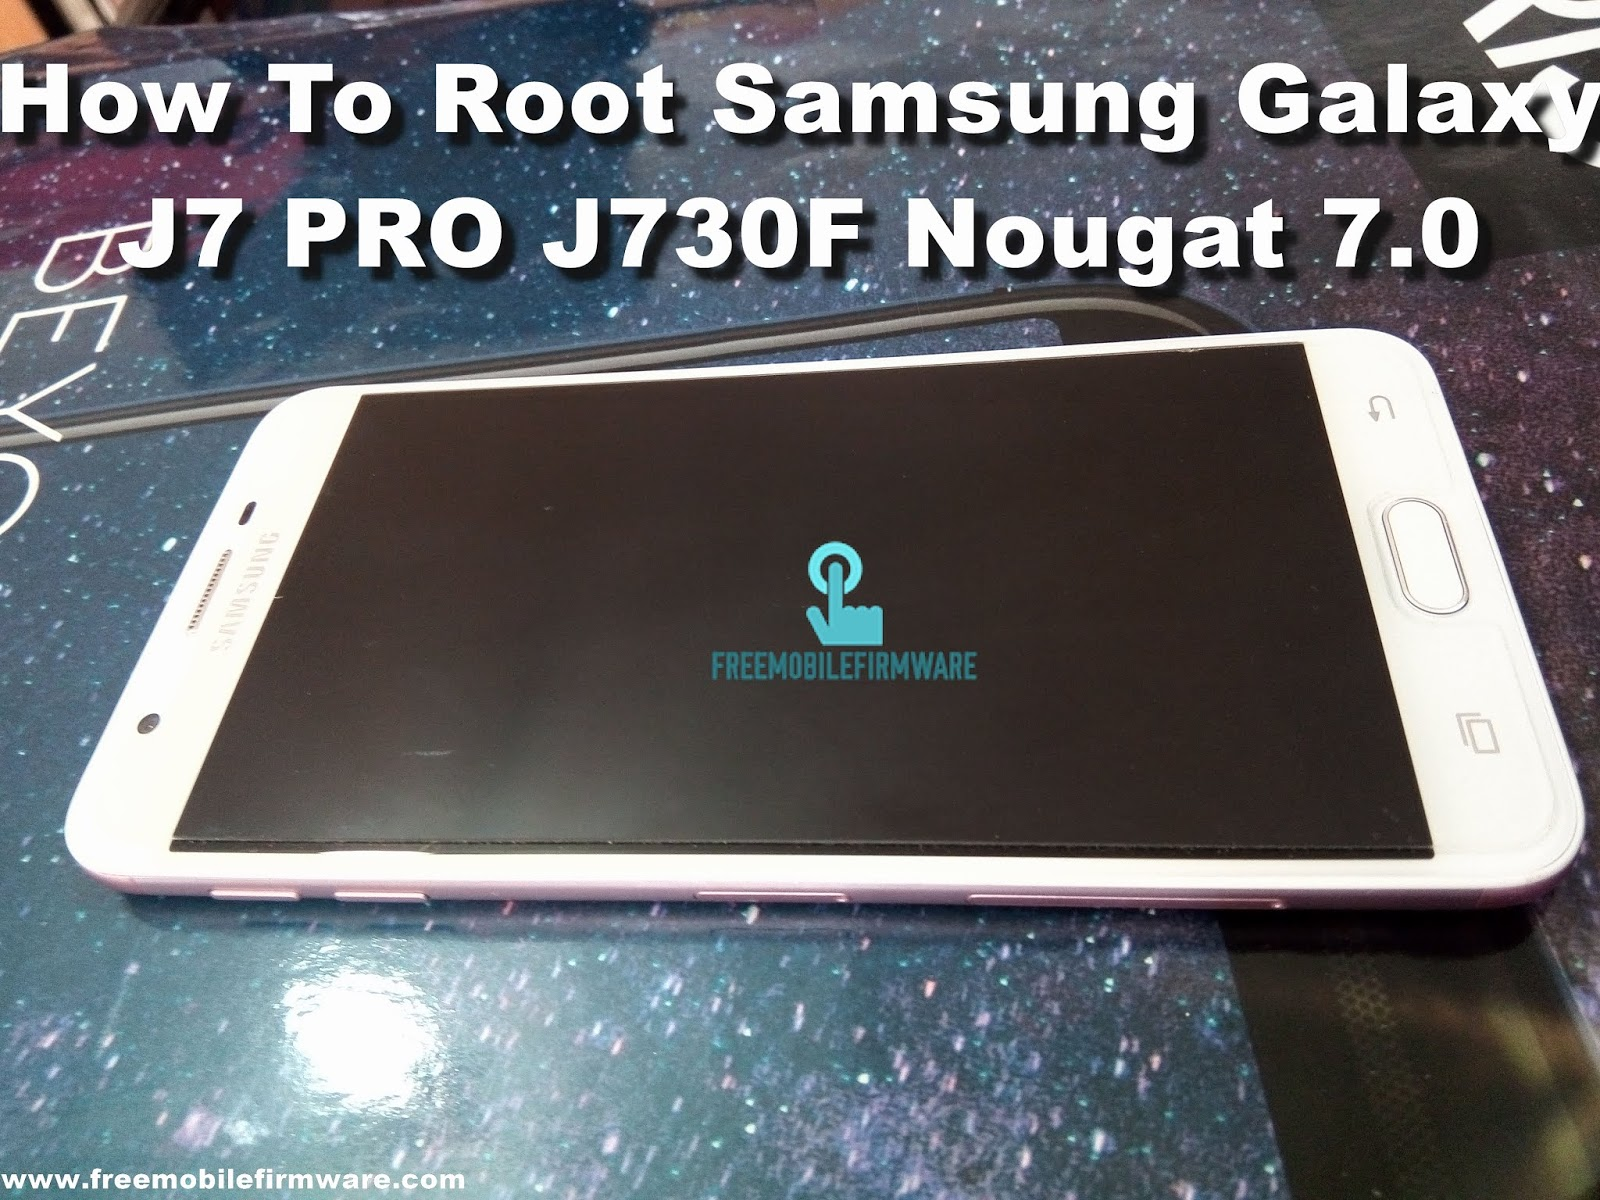 Guide To Root Samsung Galaxy J7 PRO J730F Nougat 7 0 Latest Security